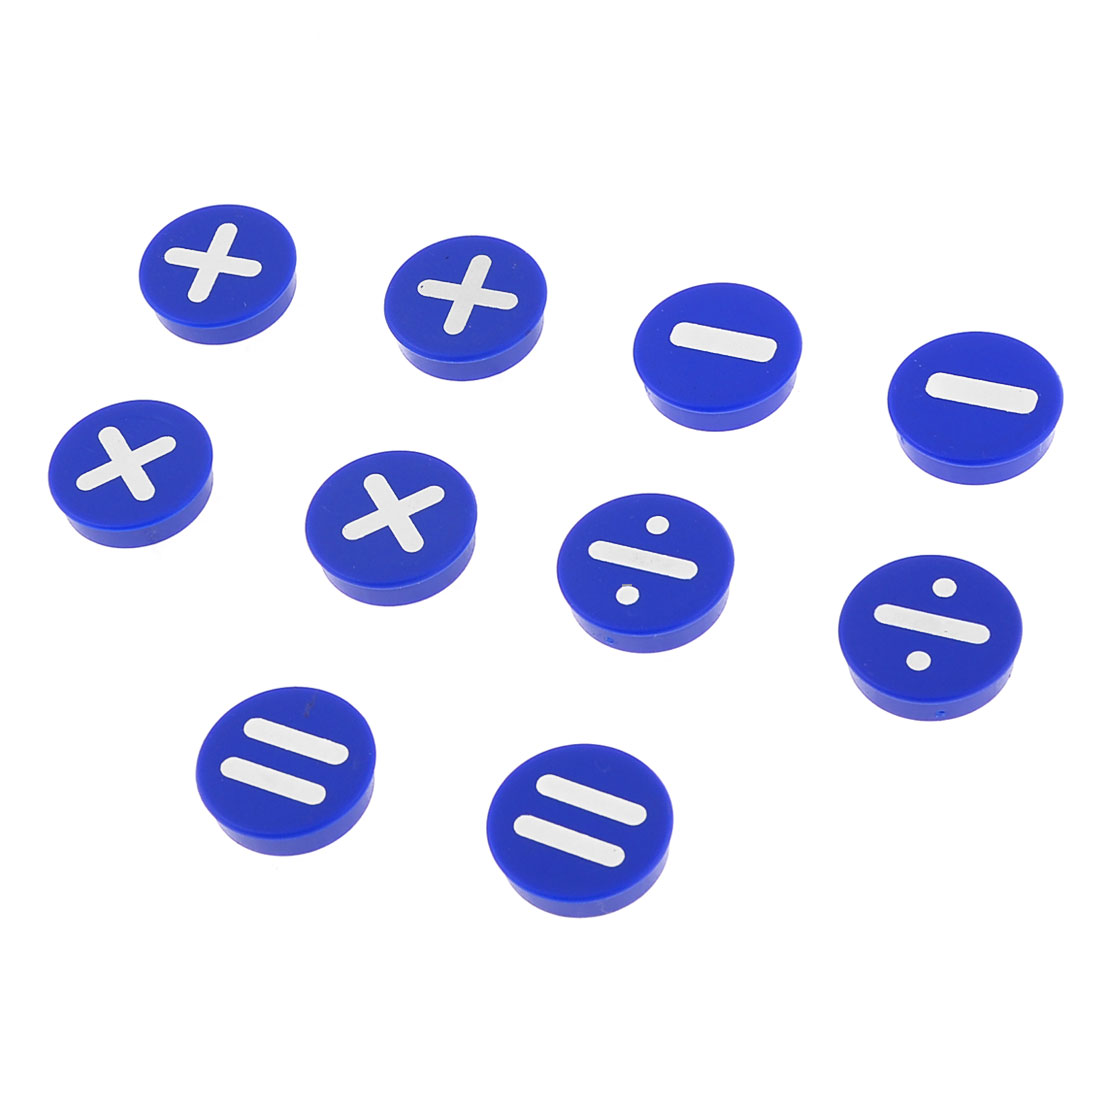 10 Pcs Blue White Basic Arithmetic Printed Round Design Fridge Magnets